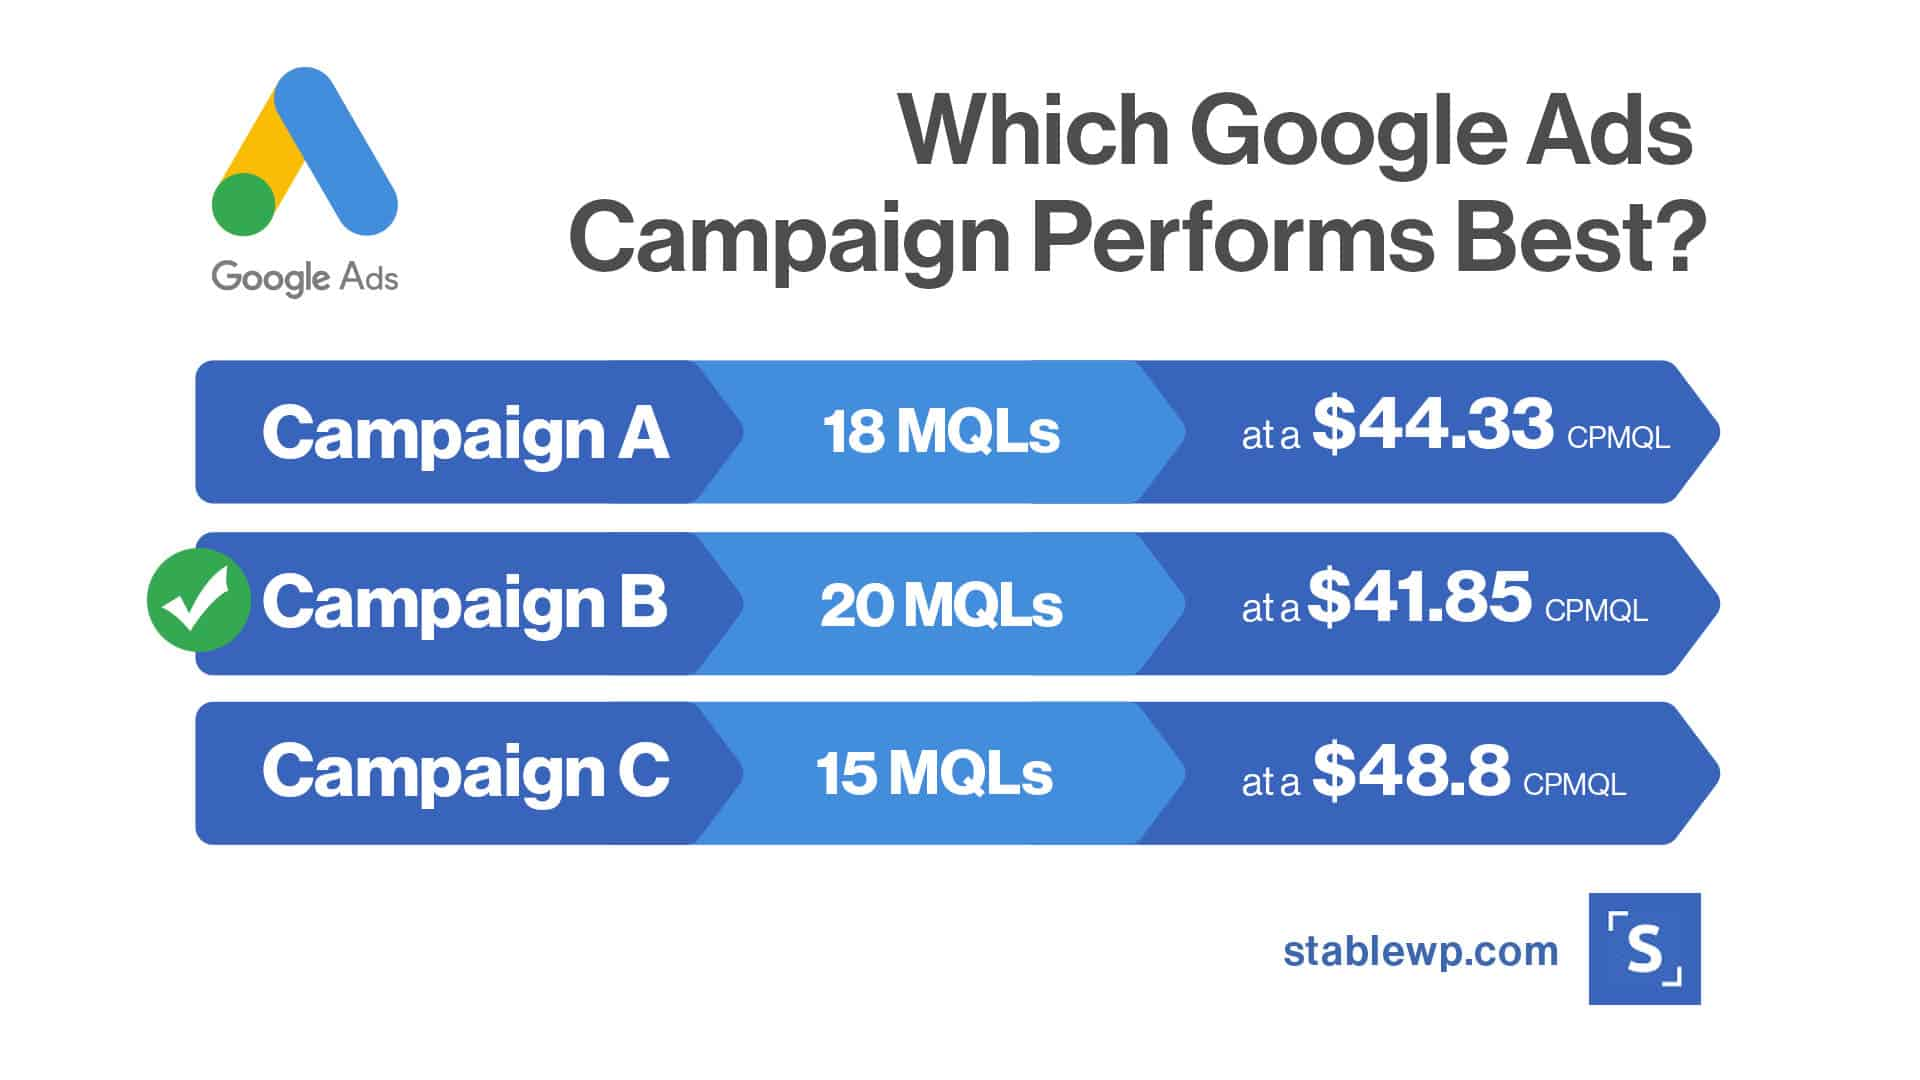 which Google Ads campaign performs best based on MQLs and the Cost per MQL